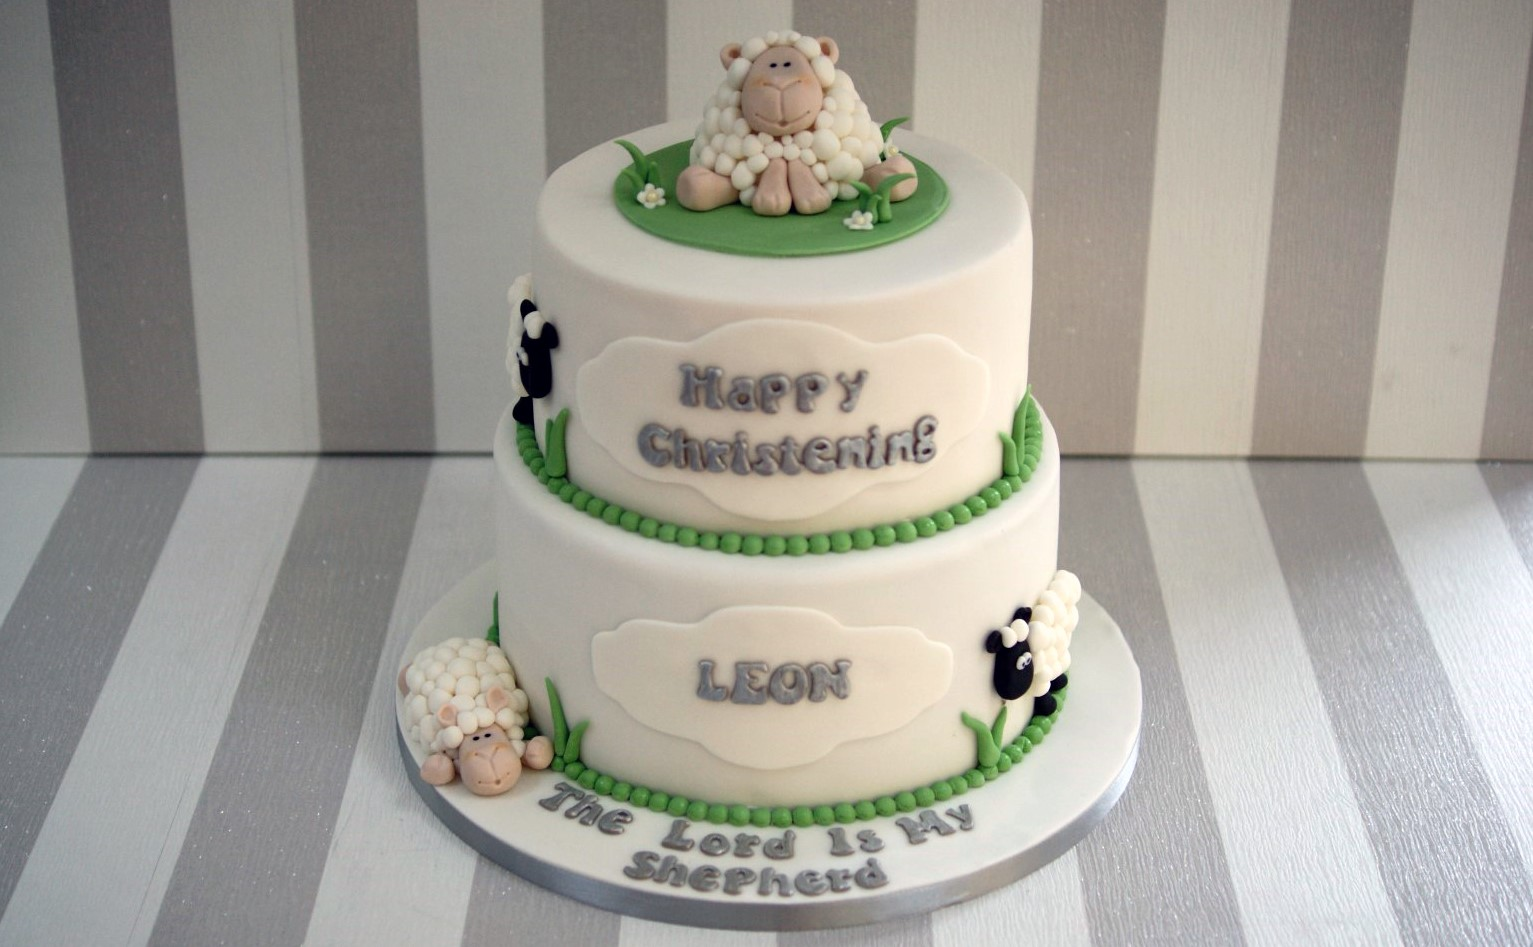 Cake Decorations For Christening Cakes